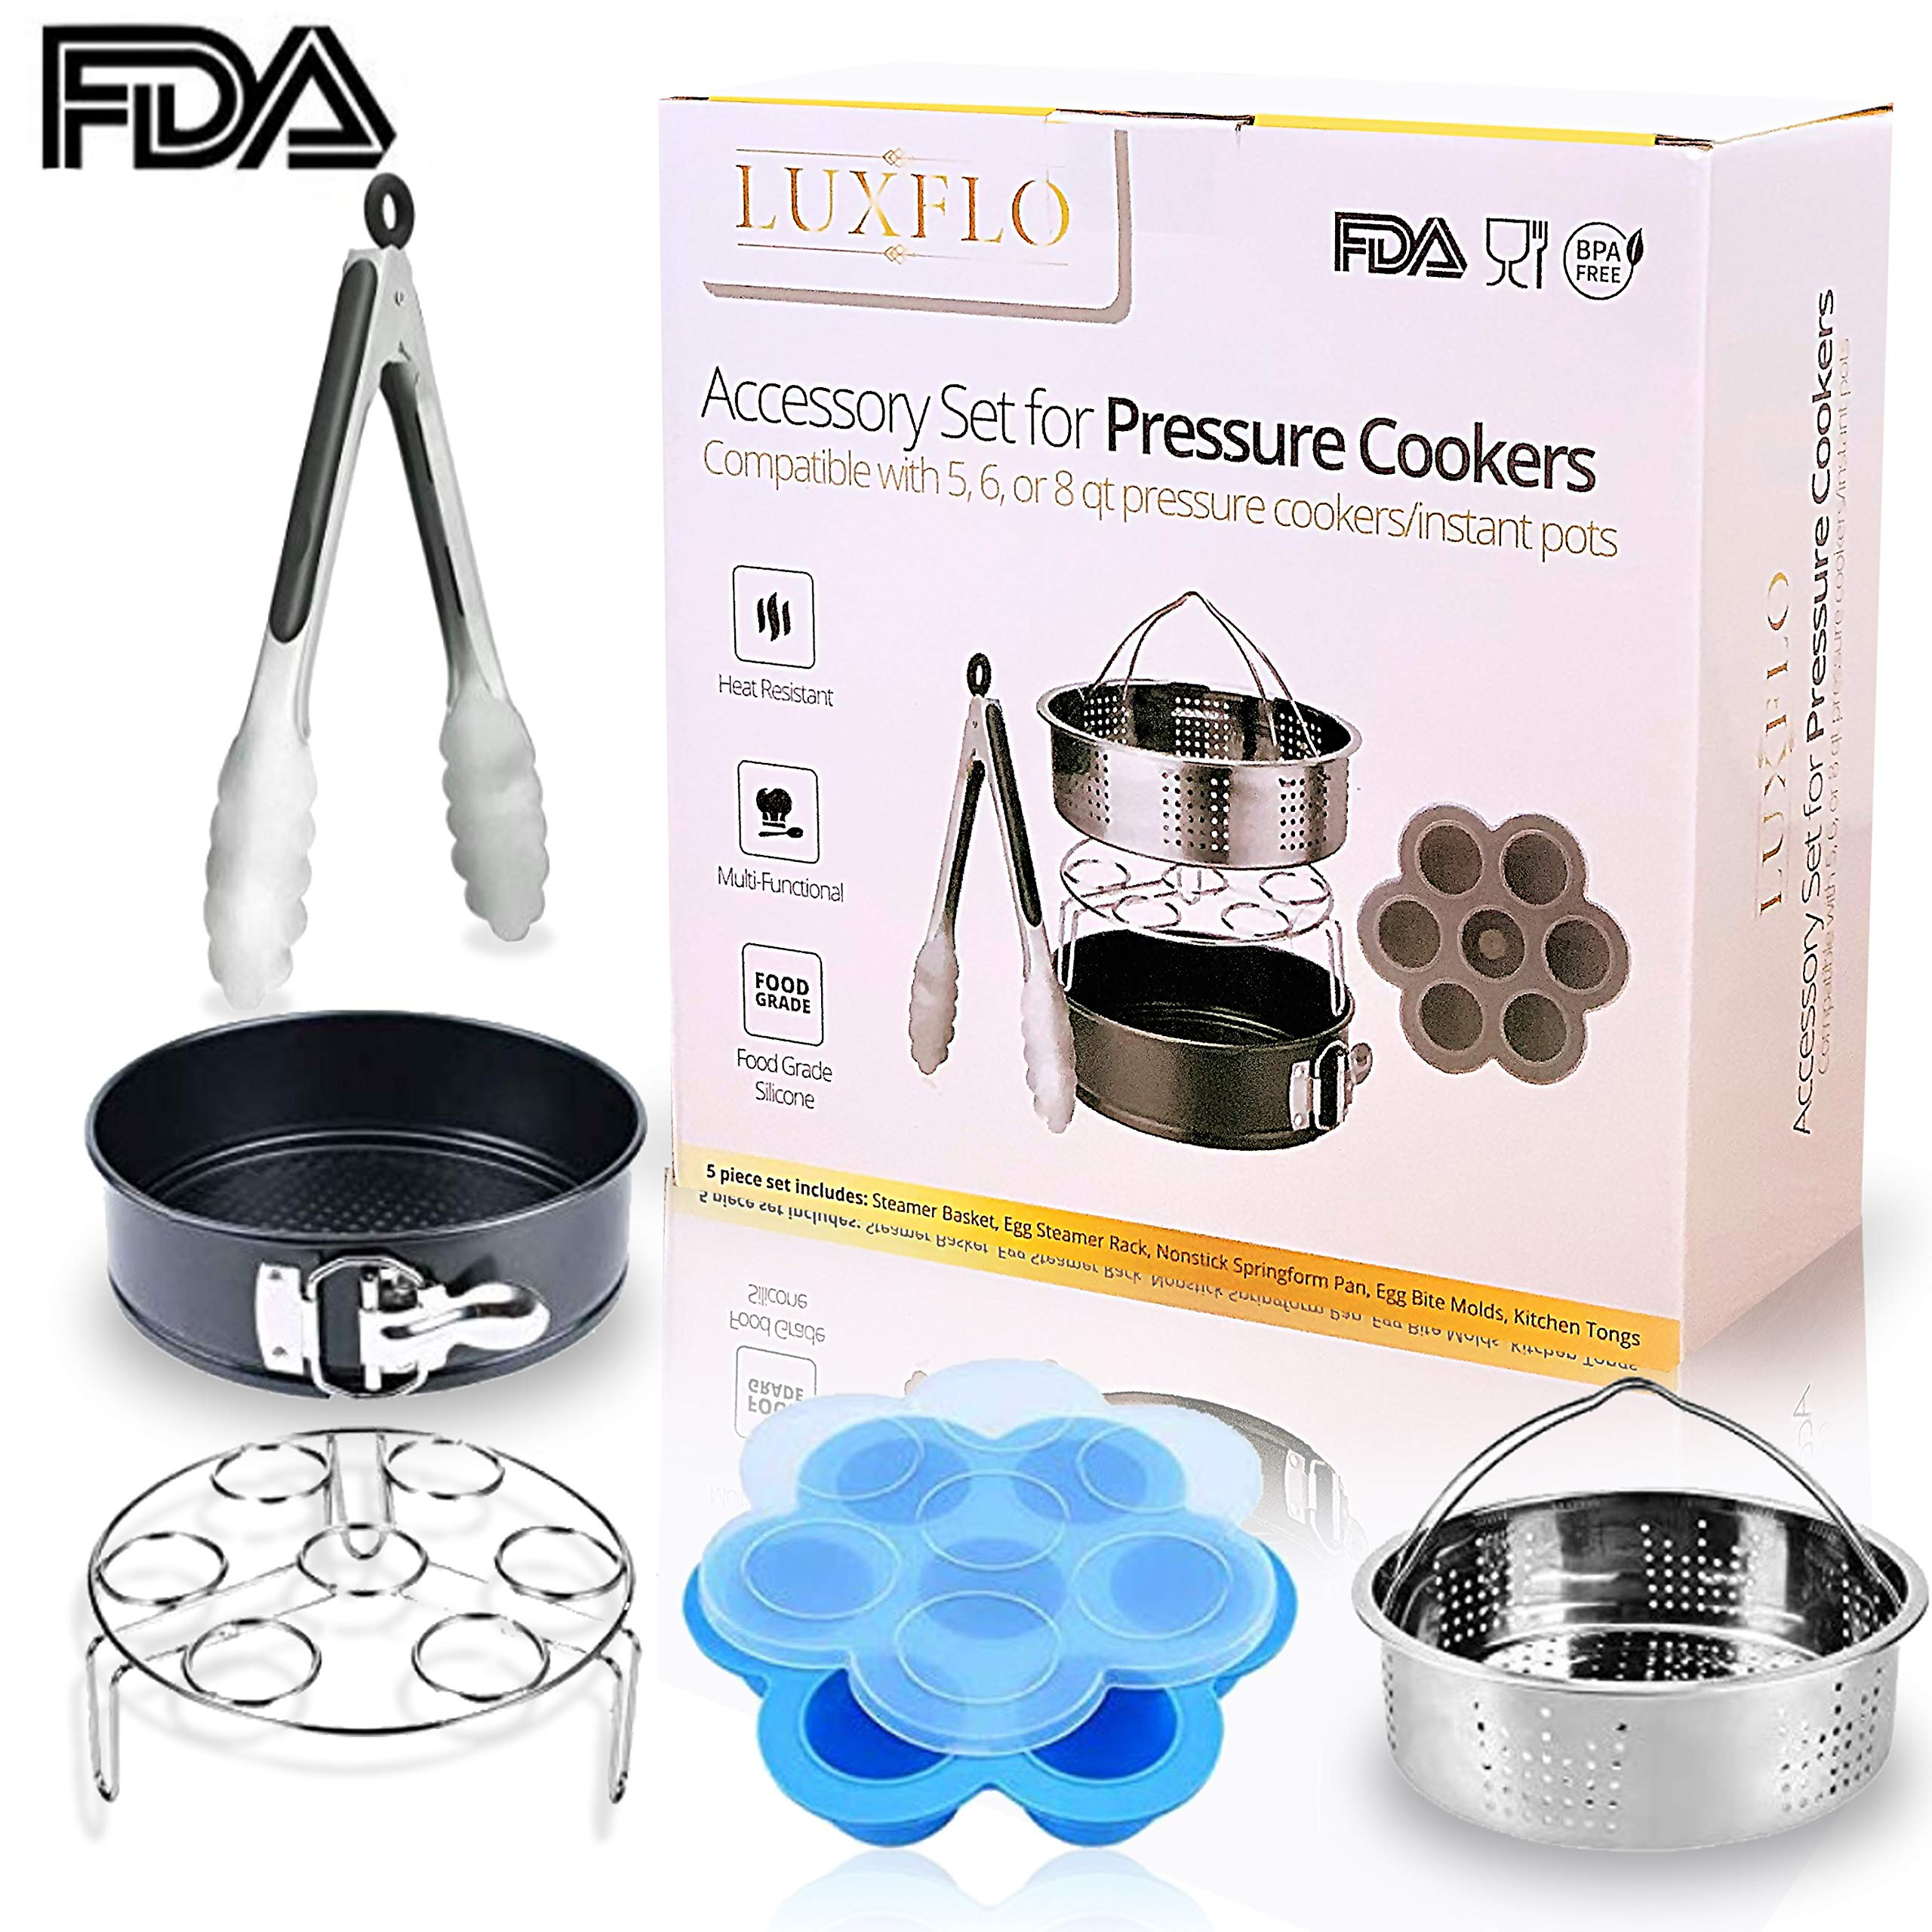 LuxFlo Instant Pot Pressure Cooker Accessories Set 5 pc, Compatible with 5, 6, 8 qt - Steamer Basket, Egg Rack, Springform Pan, Egg Bite Mold, Tongs by LuxFlo